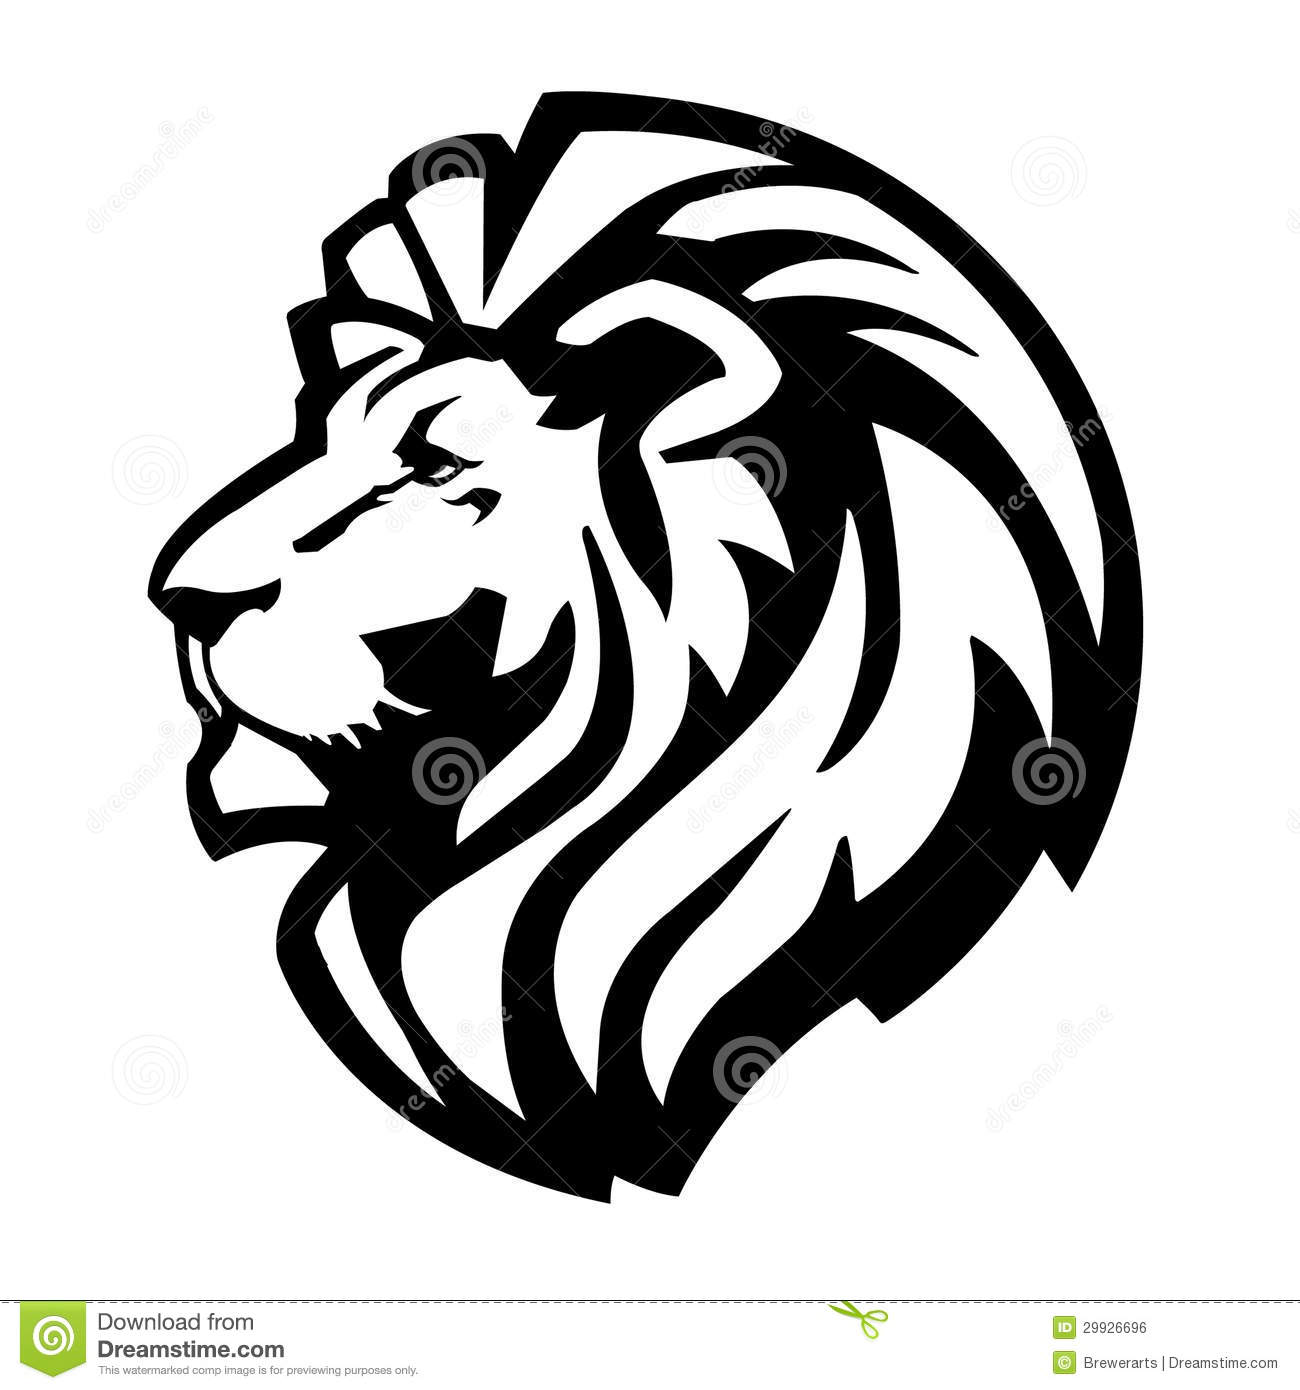 Bridge clipart abstract. White lion pencil and